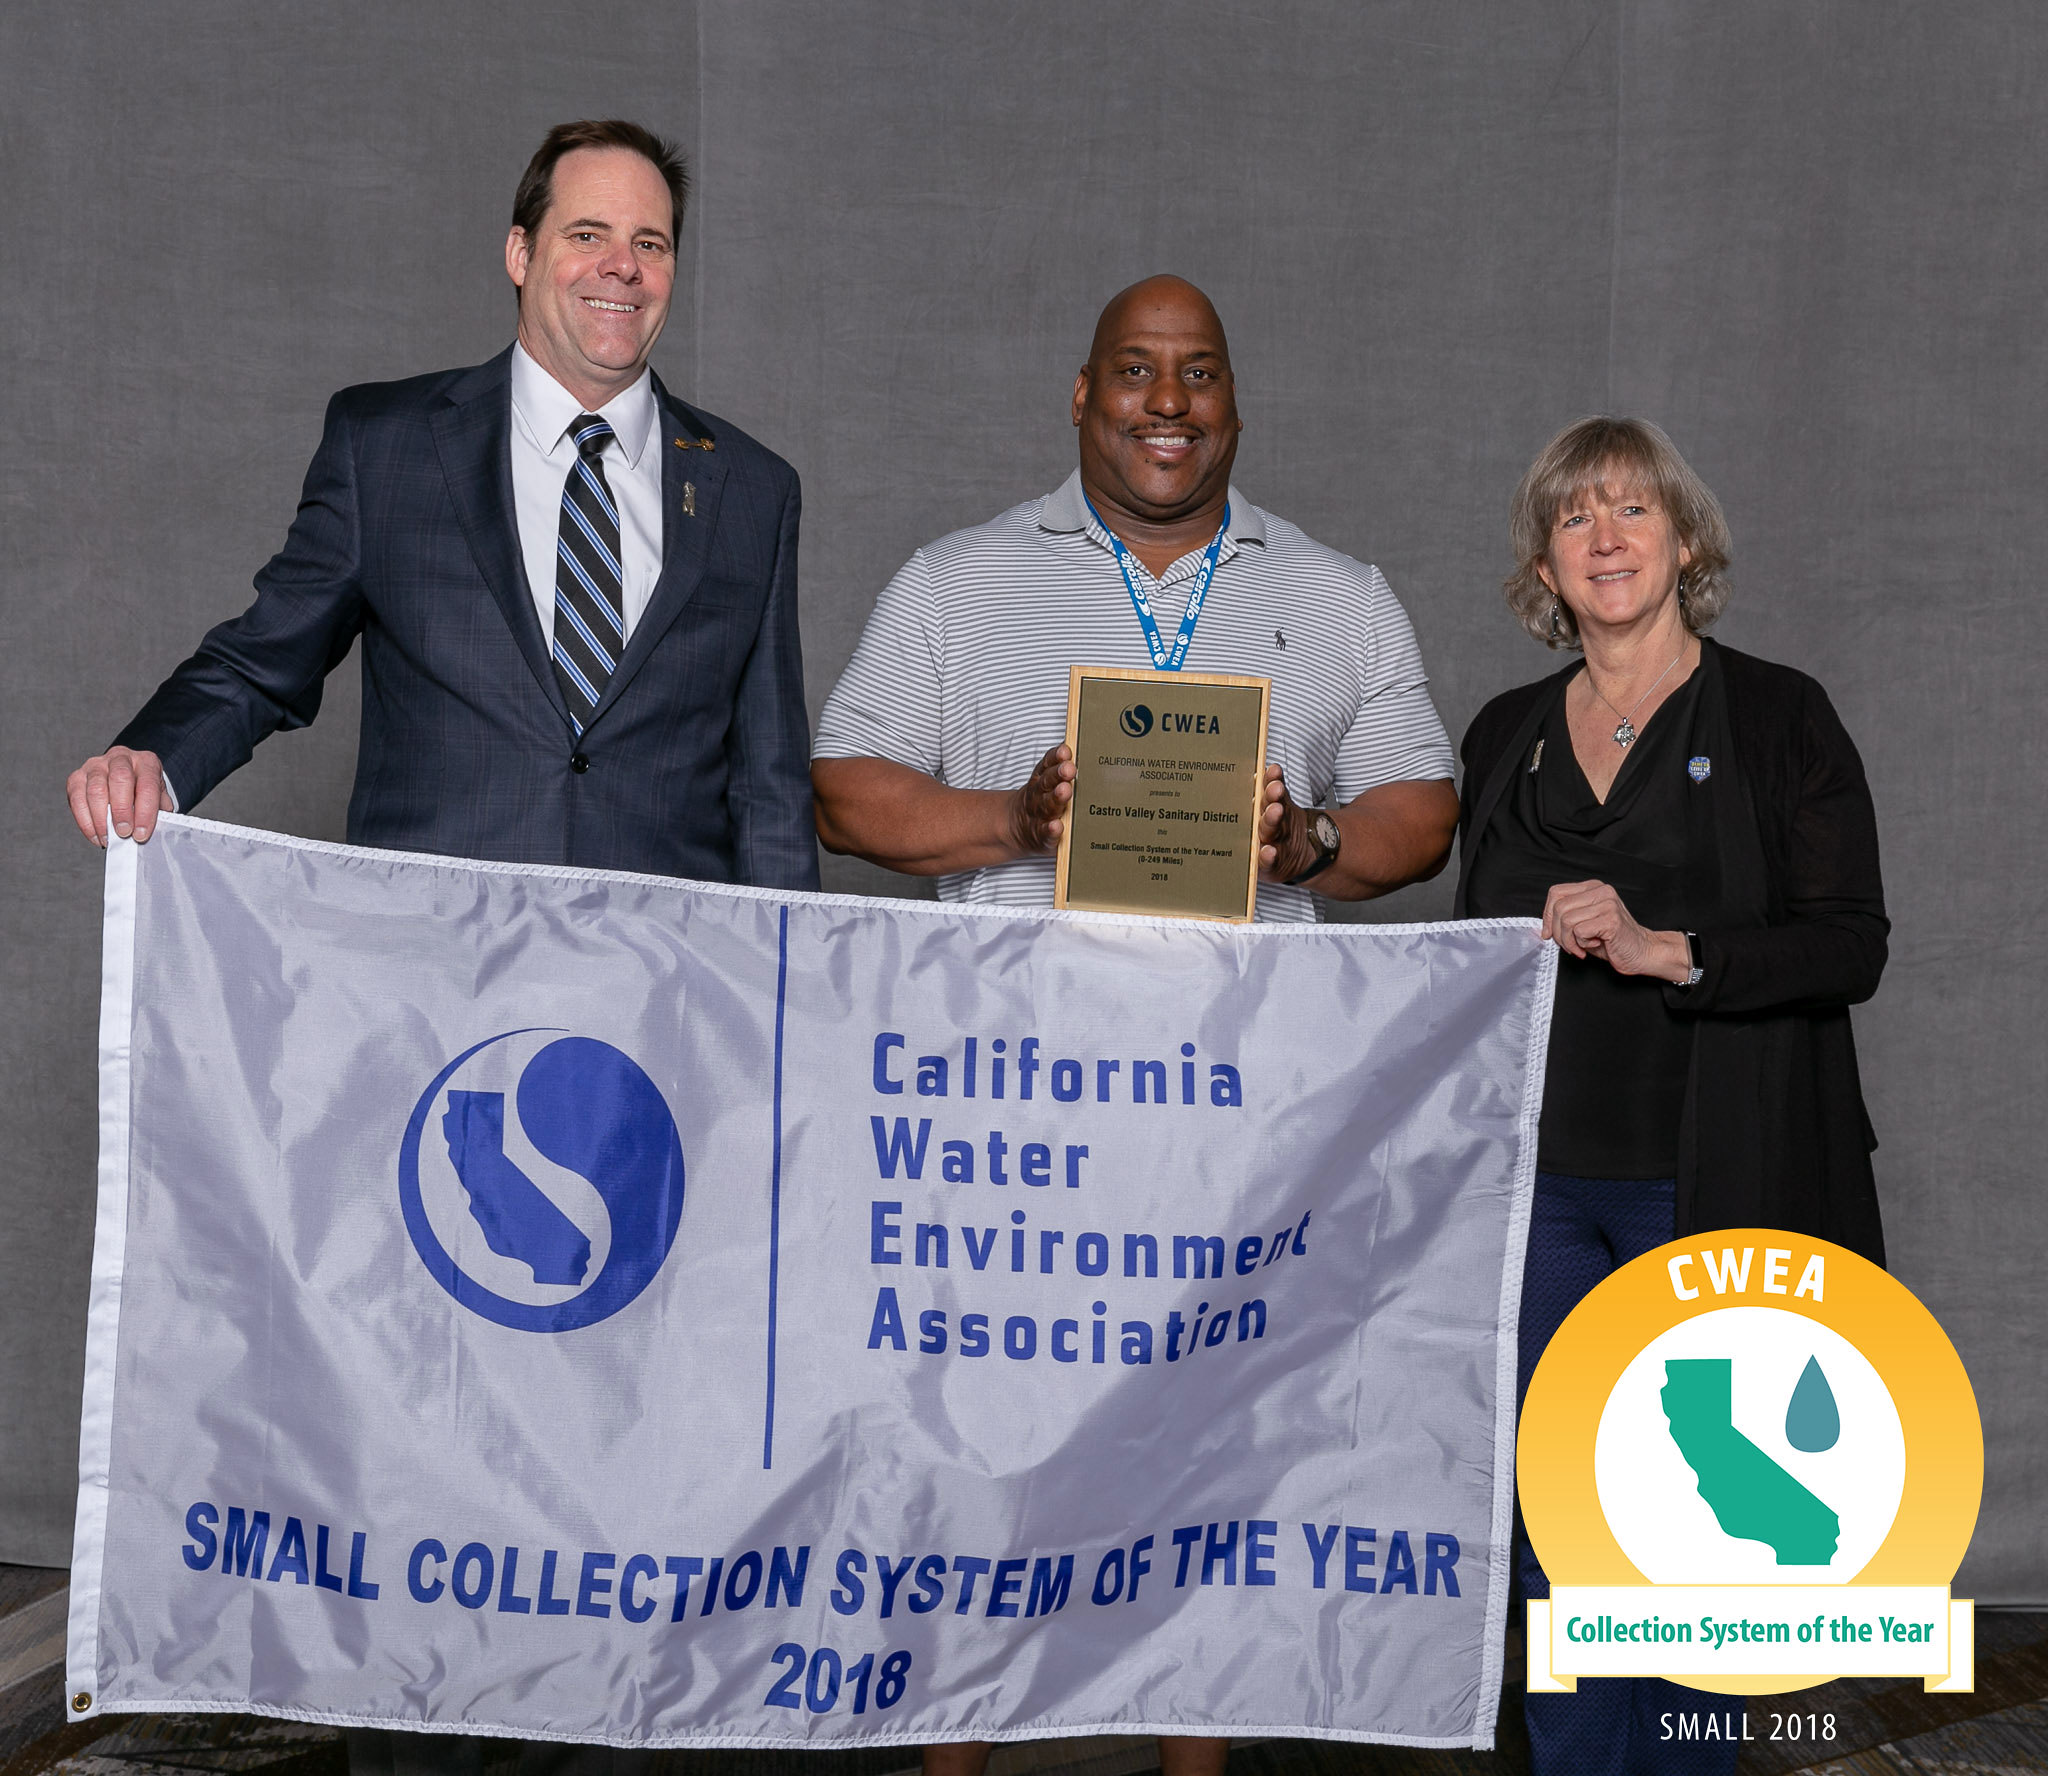 Collection System of the Year Small (0-249 Miles): Castro Valley Sanitary District